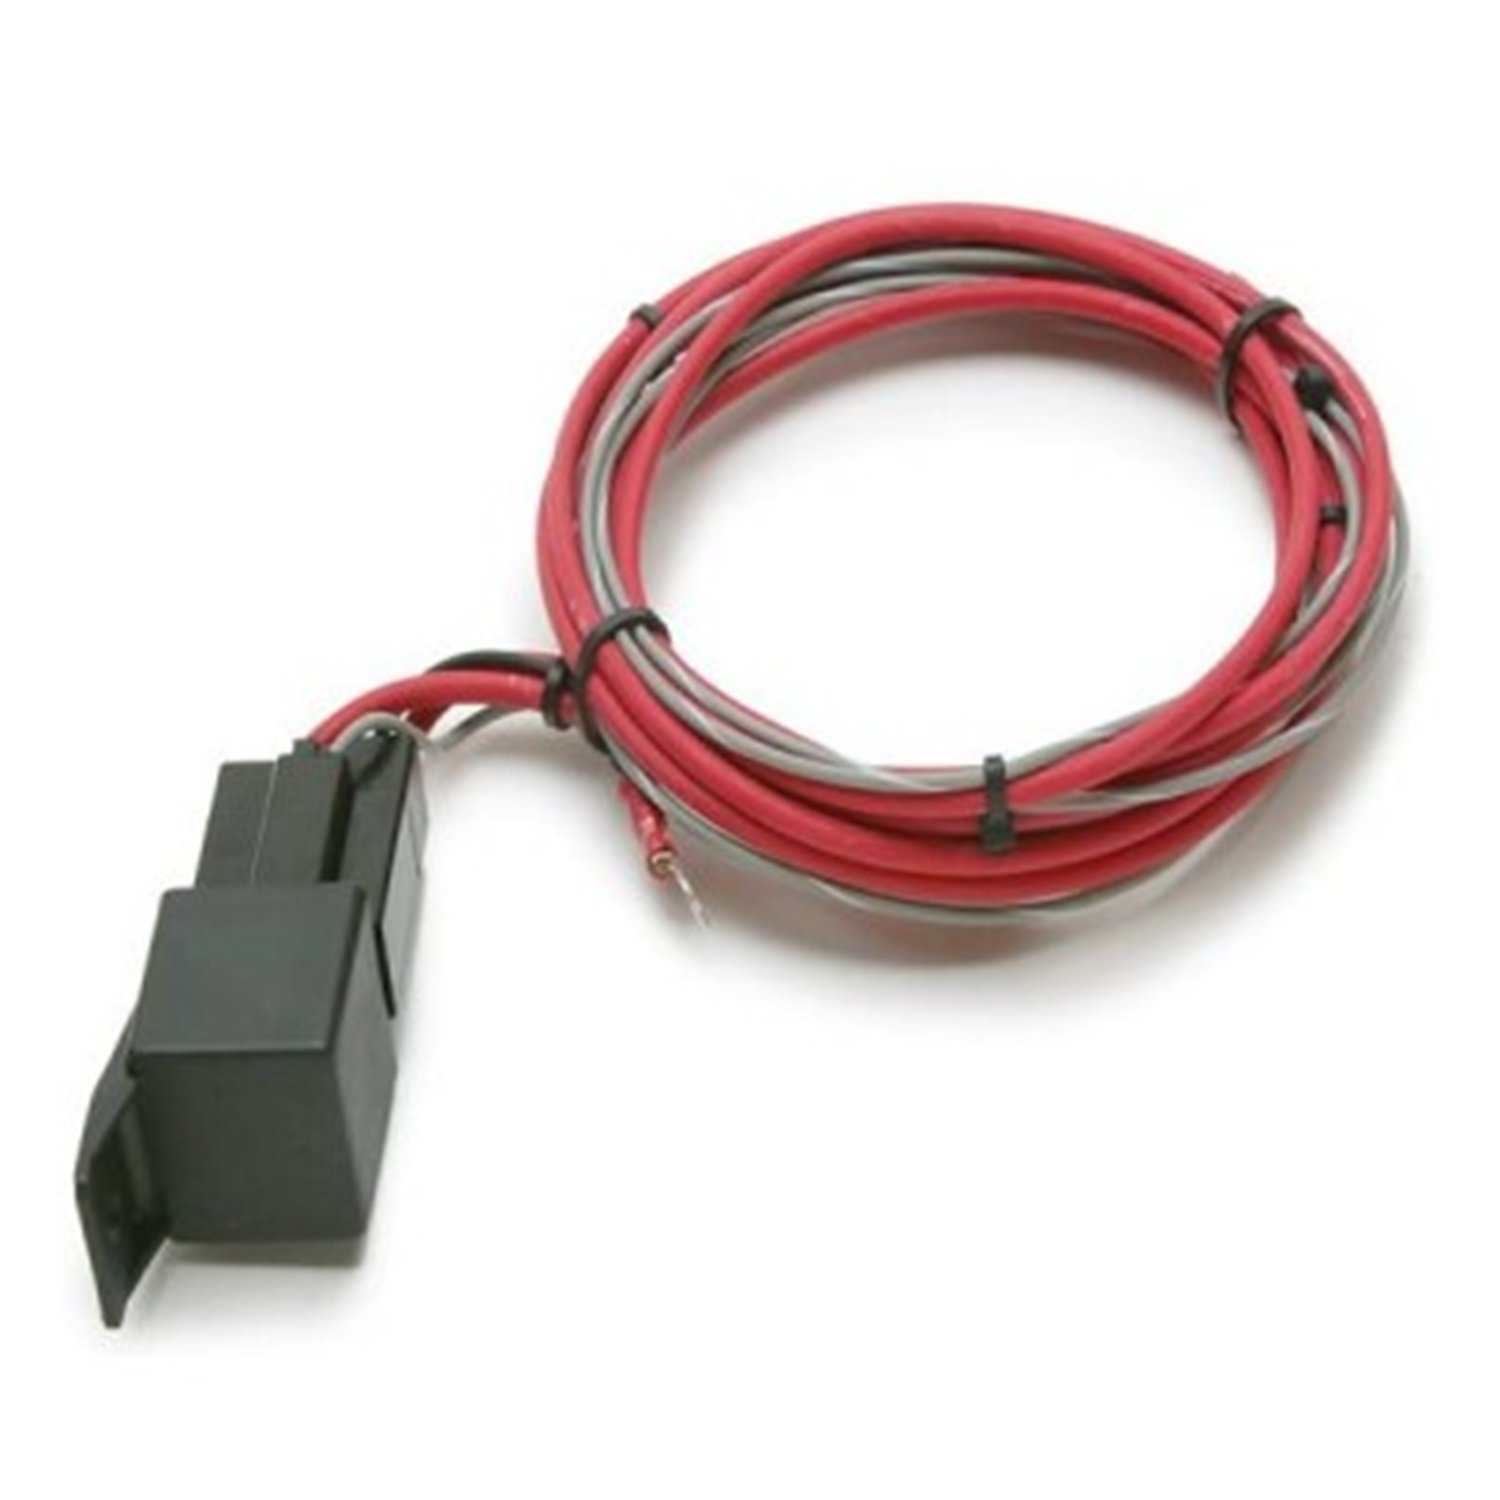 61Wk1U0jD0L._SL1500_ amazon com painless 30100 (70 amp) fan relay kit automotive painless wiring harness rebate at n-0.co